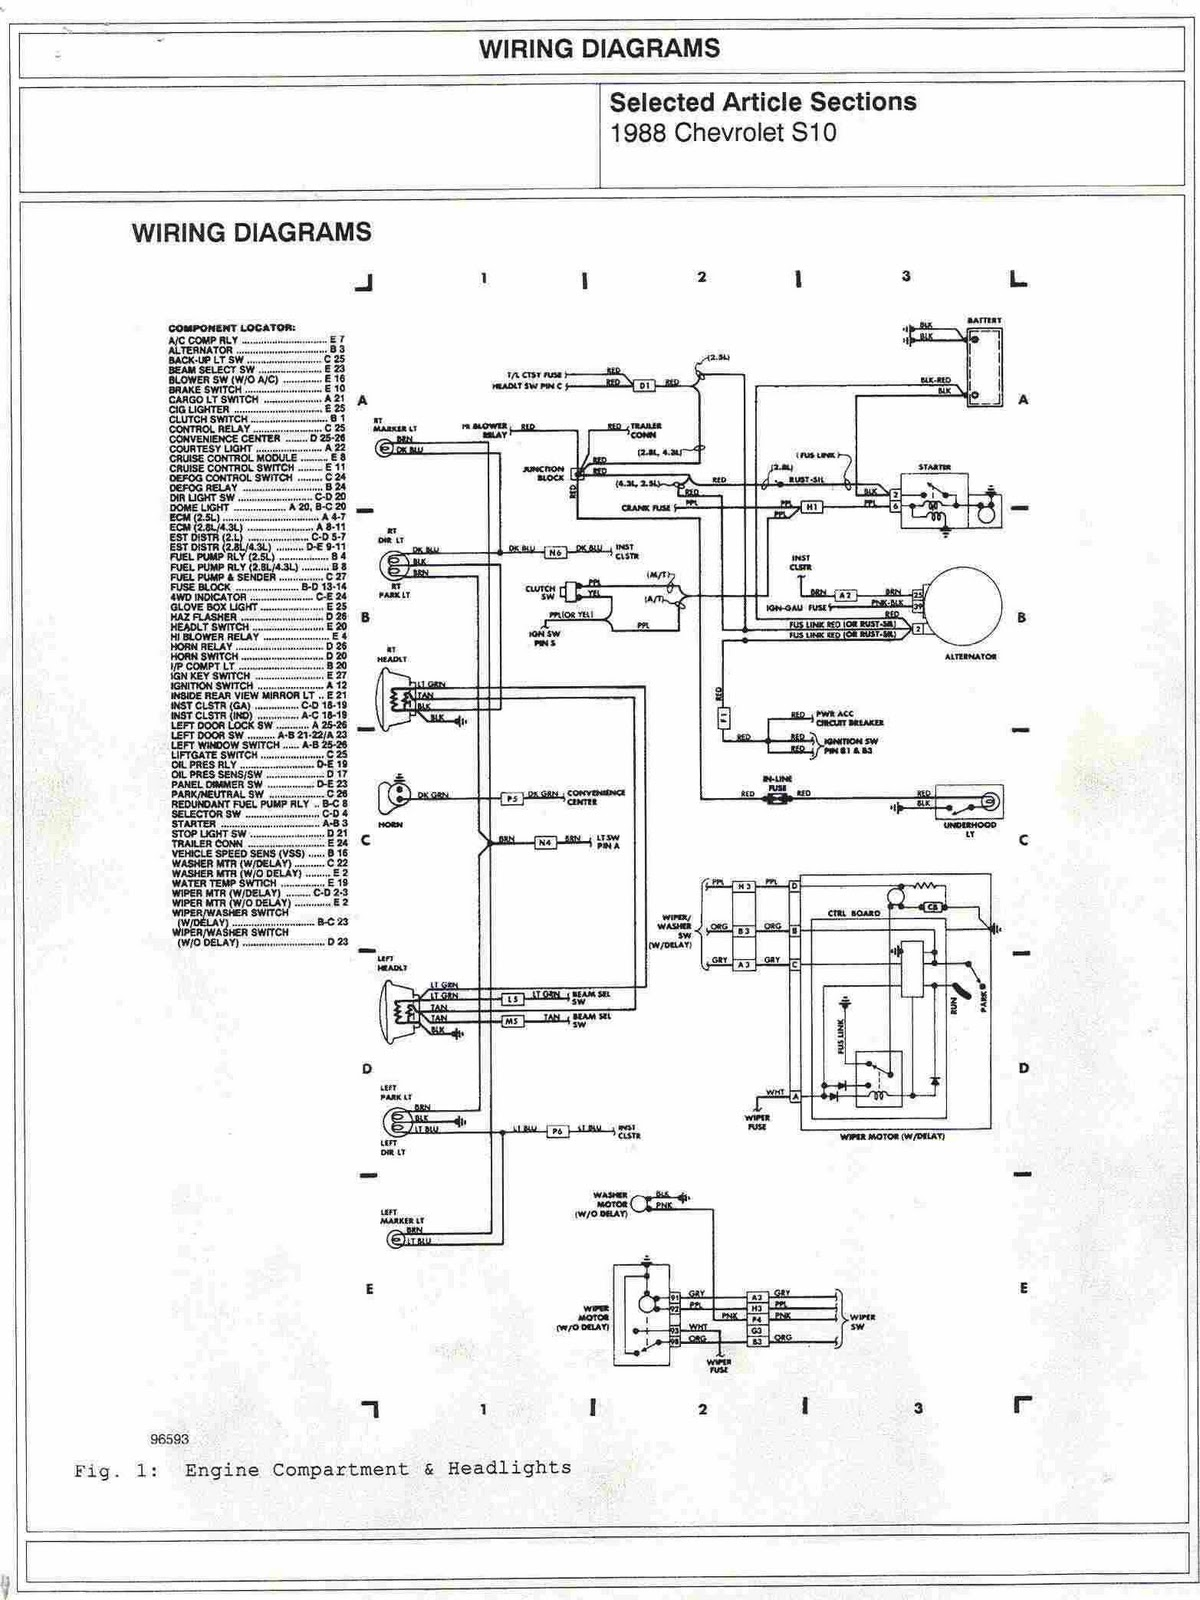 1988+Chevrolet+S10+Engine+Compartment+and+Headlights+Wiring+Diagrams 95 s10 wiring diagram 95 tahoe wiring diagram \u2022 wiring diagrams 78 Chevy Silverado at metegol.co